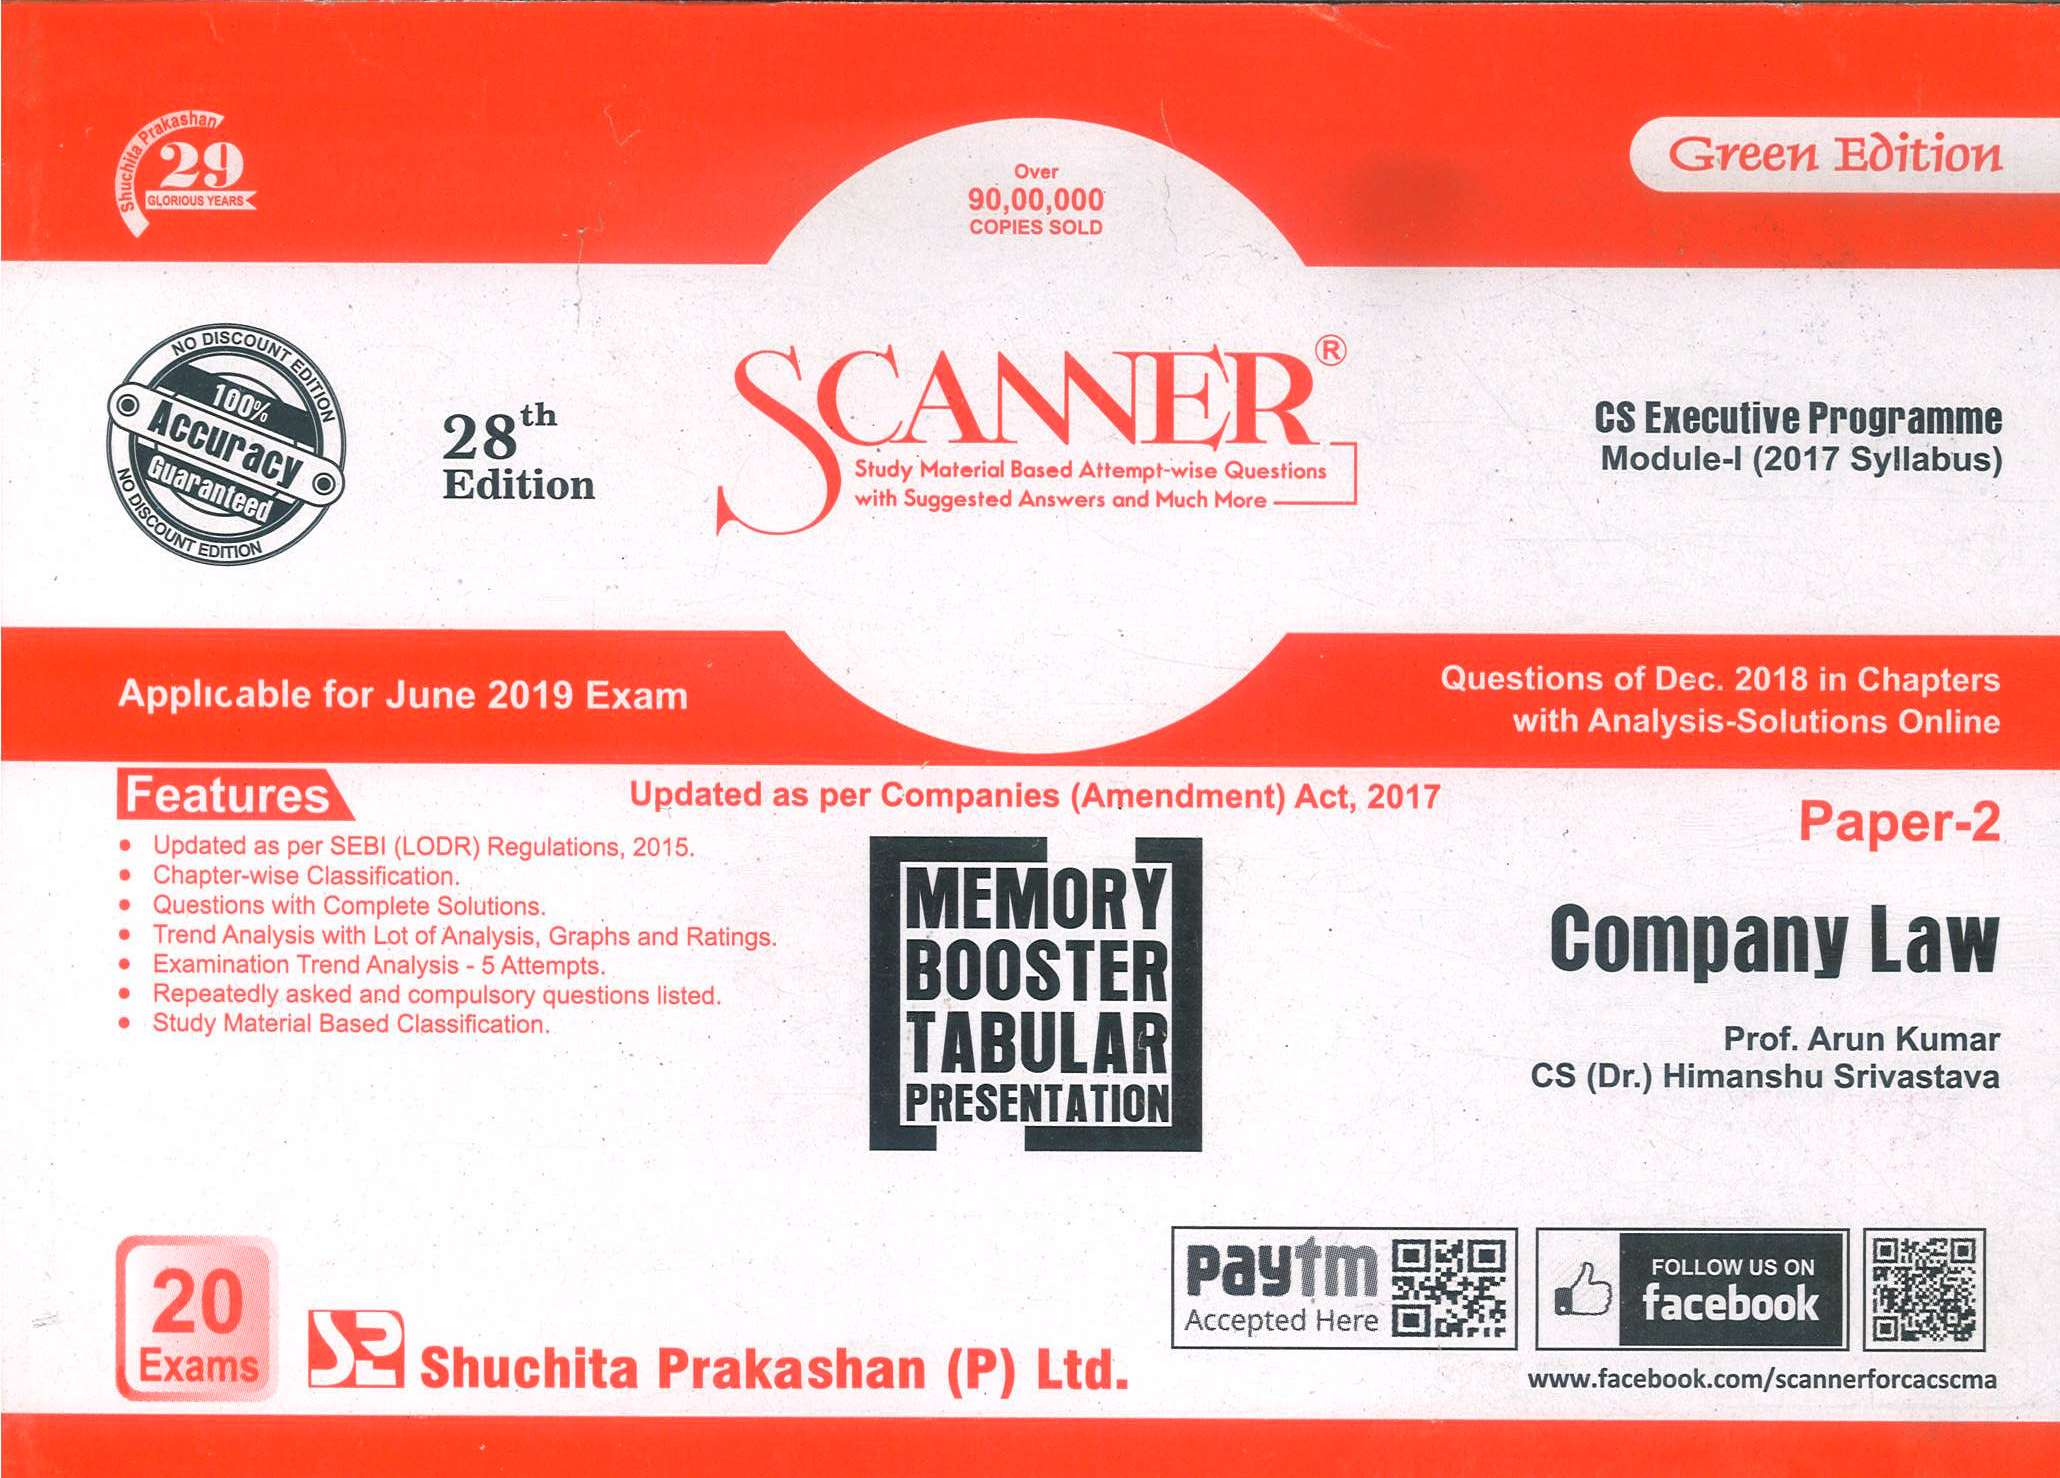 Shuchita Company Law Solved Scanner for June 2019 Exam for CS Executive Programme Module-I (2017 Syllabus) Paper 2 Green Edition by Prof. Arun Kumar and CS (Dr.) Himanshu Srivastava (Shuchita Prakashan) Jan Edition 2019